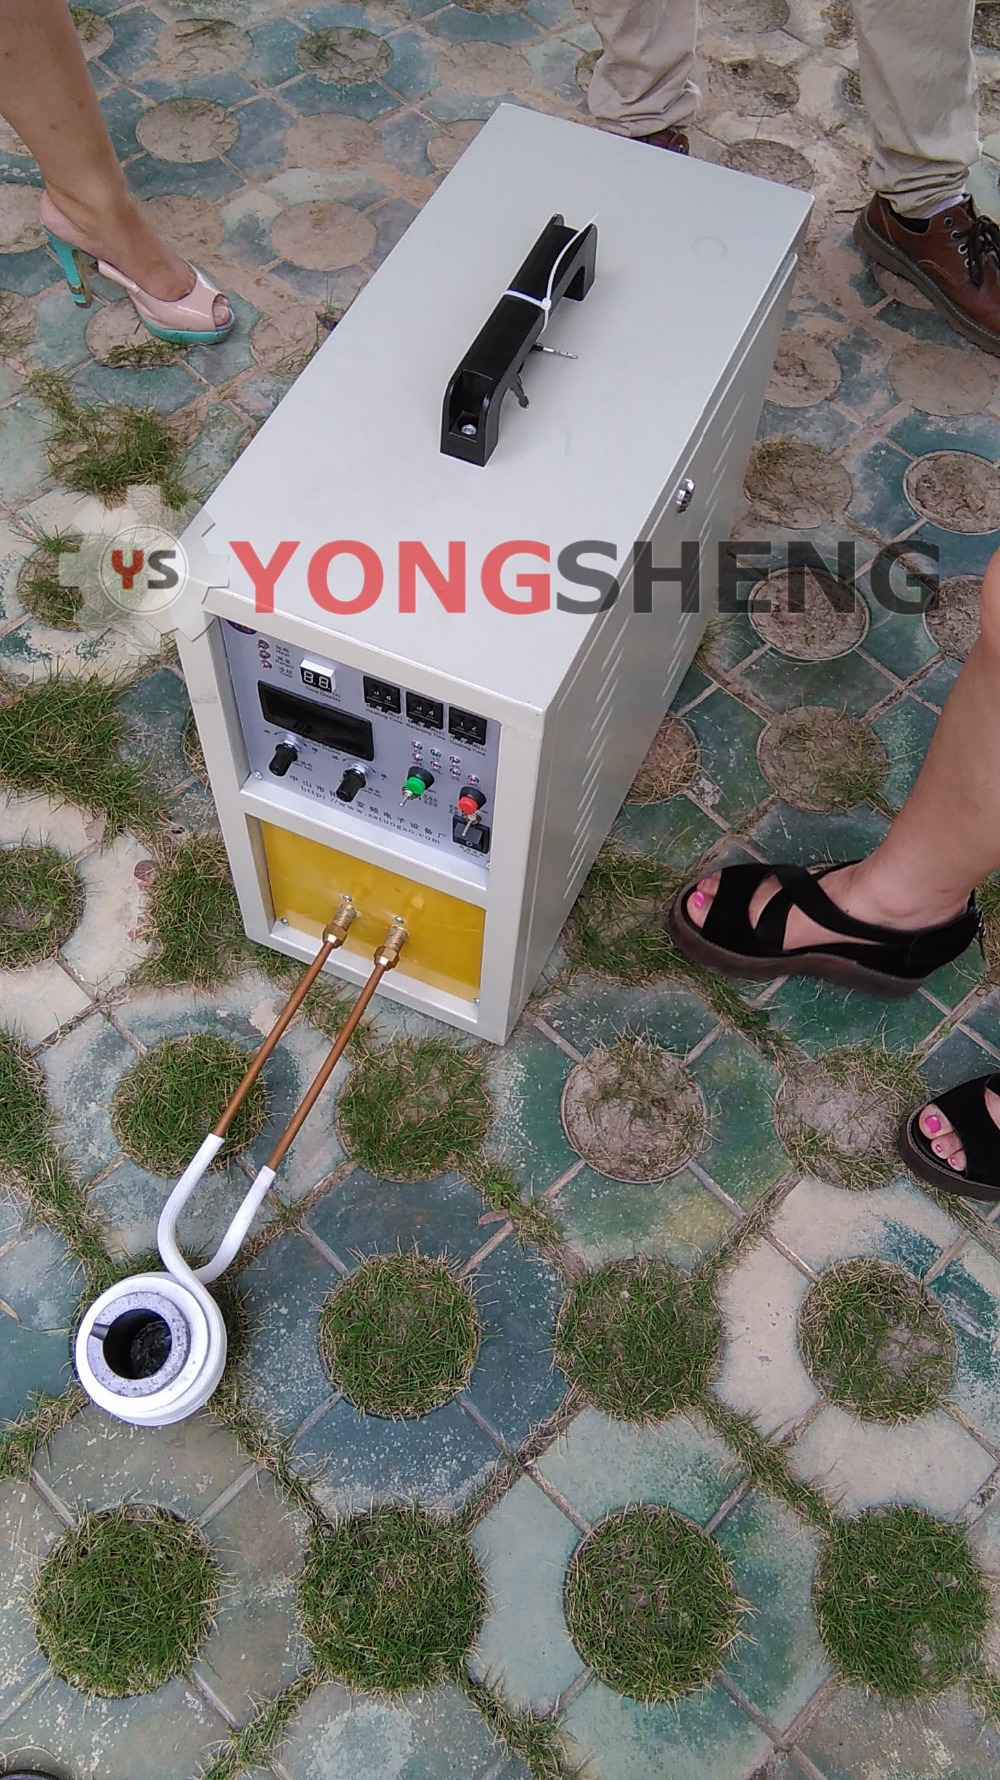 Portable mini small cale laboratory lab electric gold smelting melting furnace melter smelter for home laboratory use 220V 380V